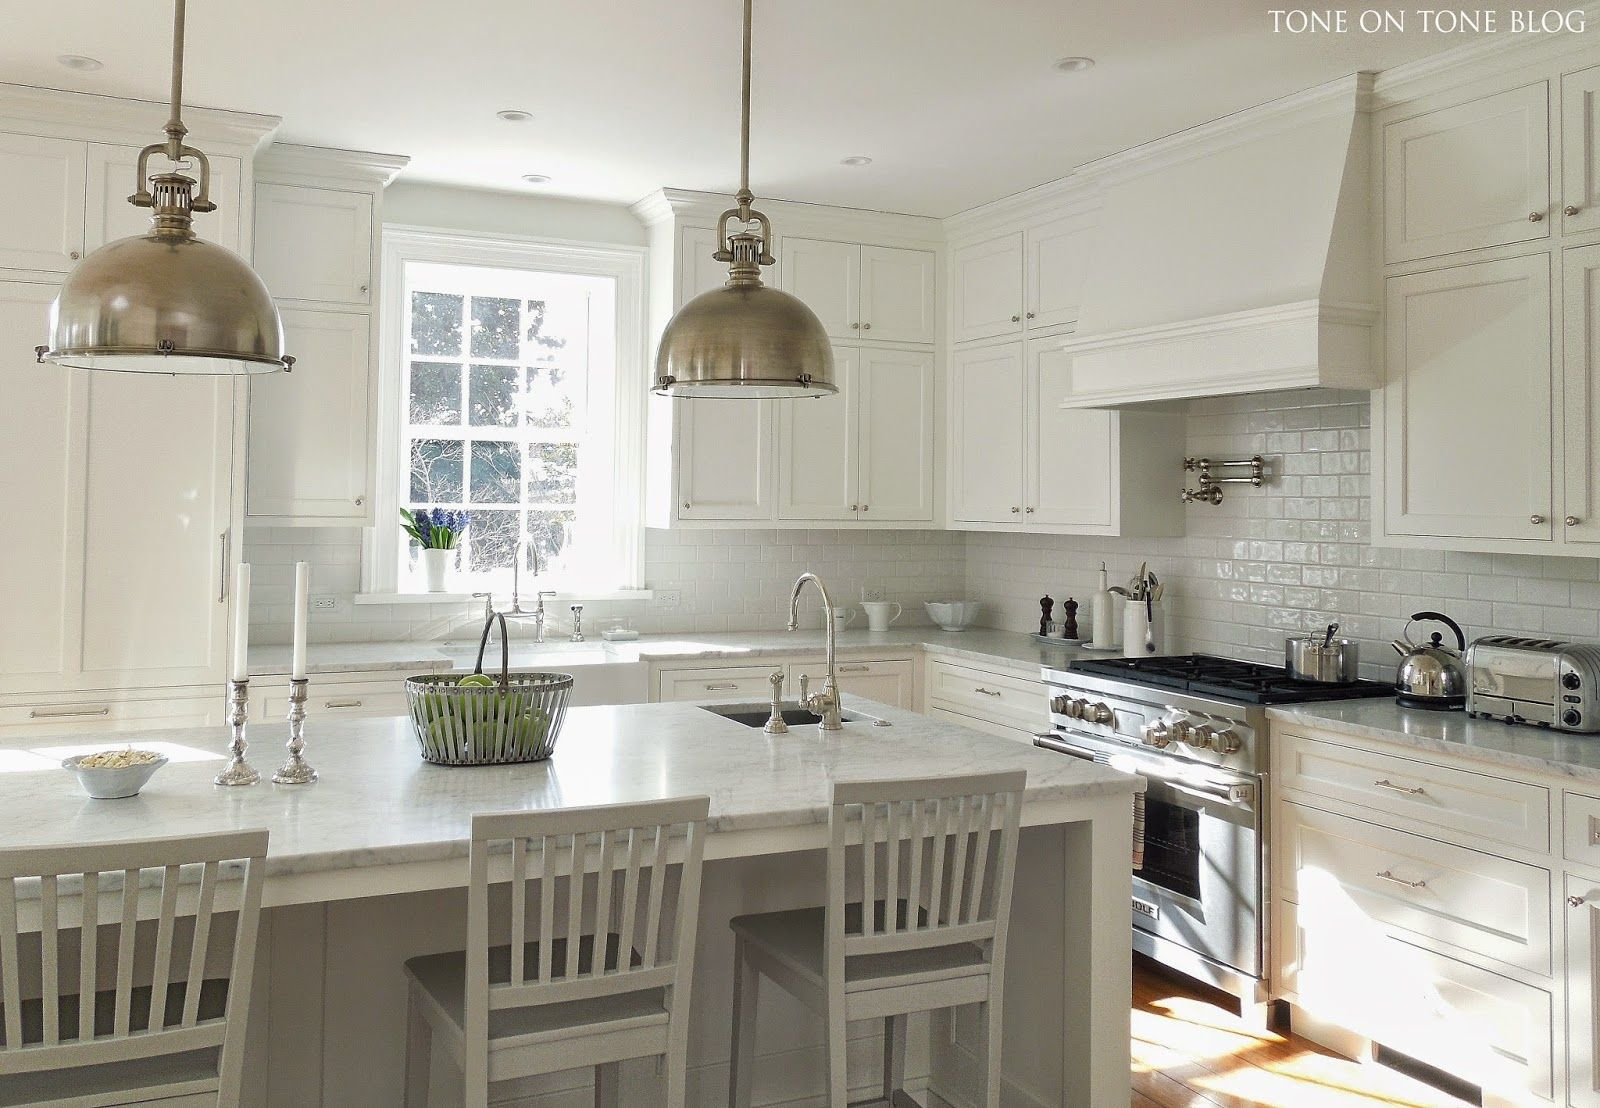 Tone on Tone: Shades of Gray and White. Polished nickel faucet from ...